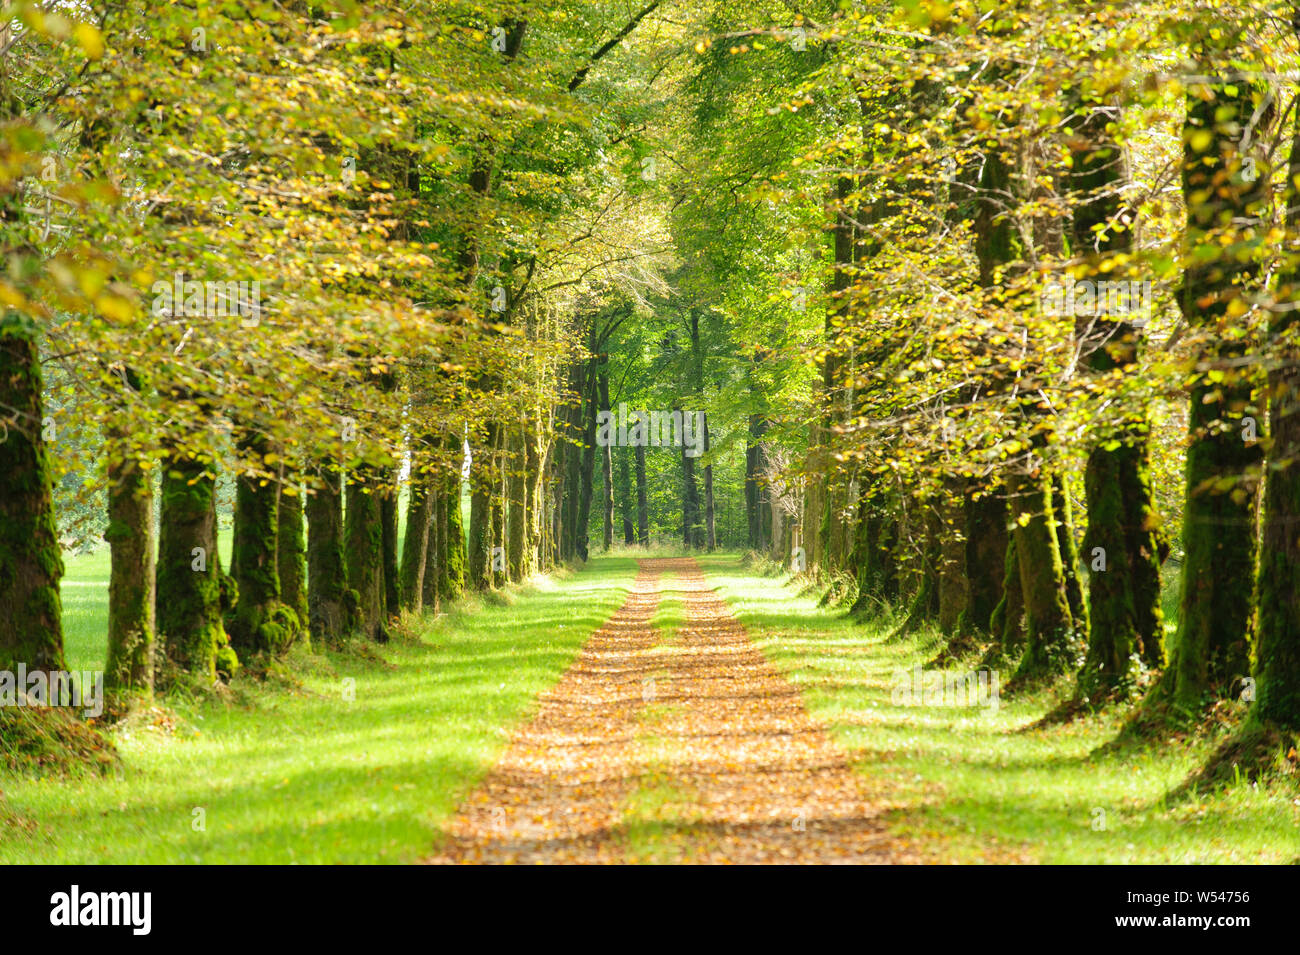 tree-lined alley with footpath in middle Stock Photo